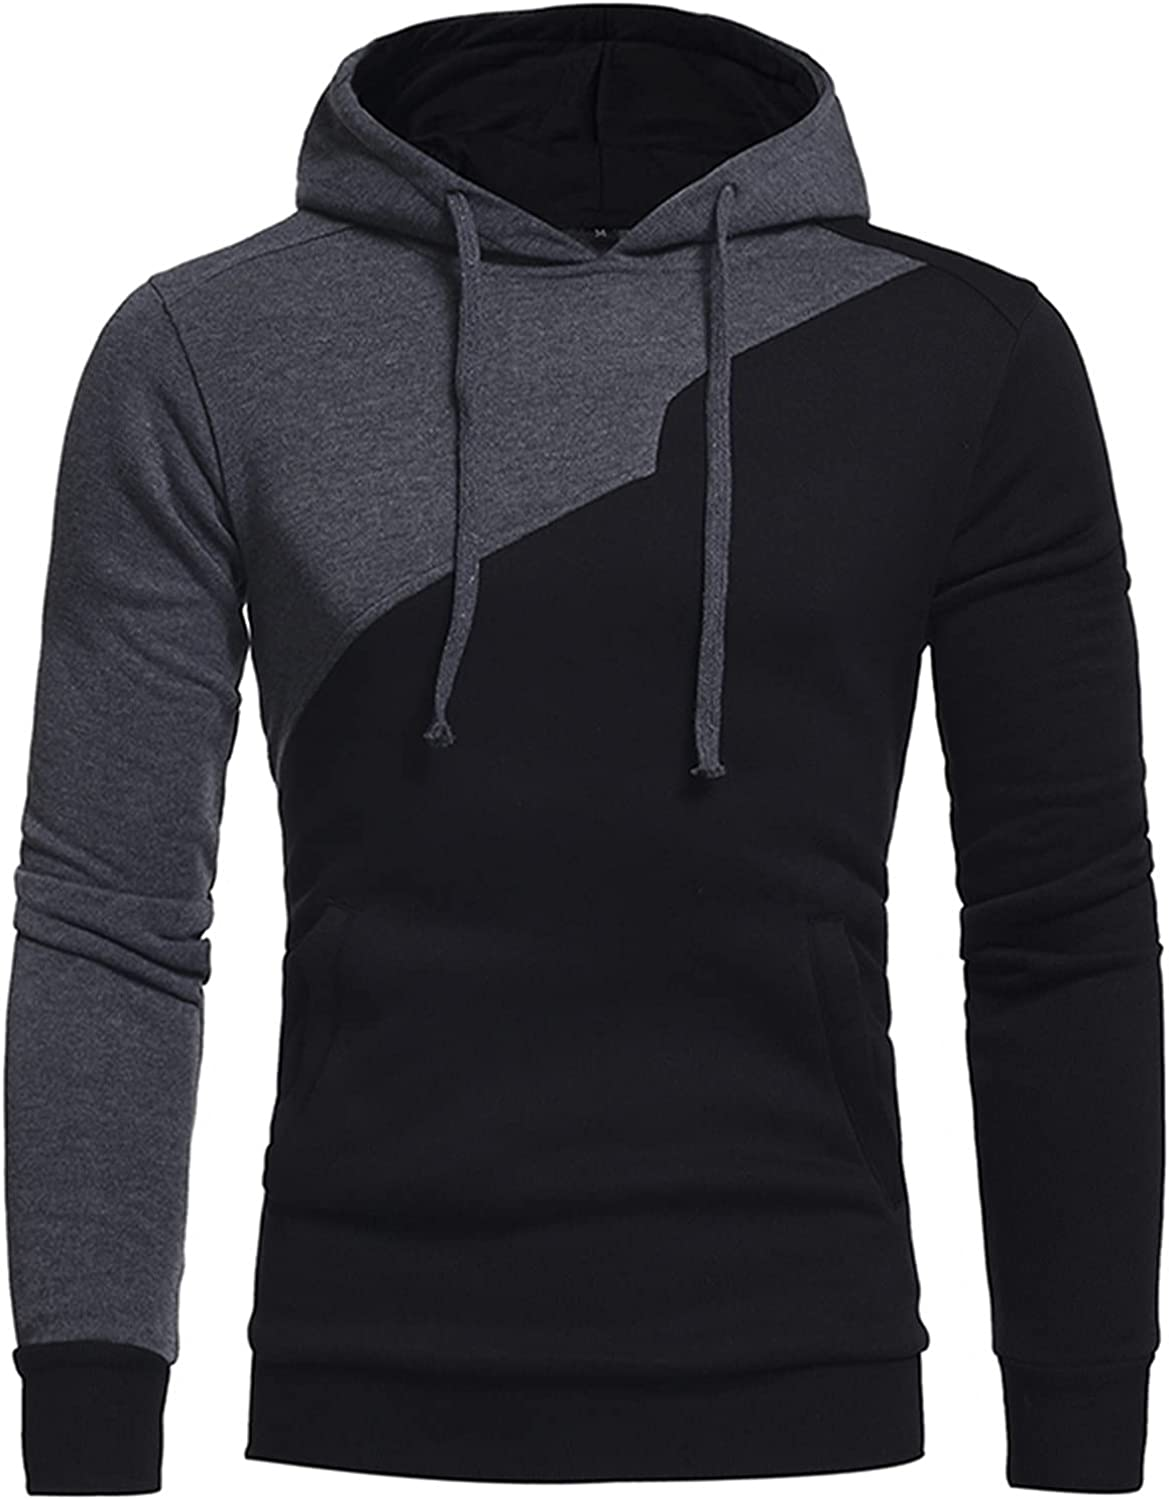 HONGJ Stitching Hoodies for Mens, Color Block Patchwork Drawstring Casual Hooded Sweatshirts Workout Fitness Pullover